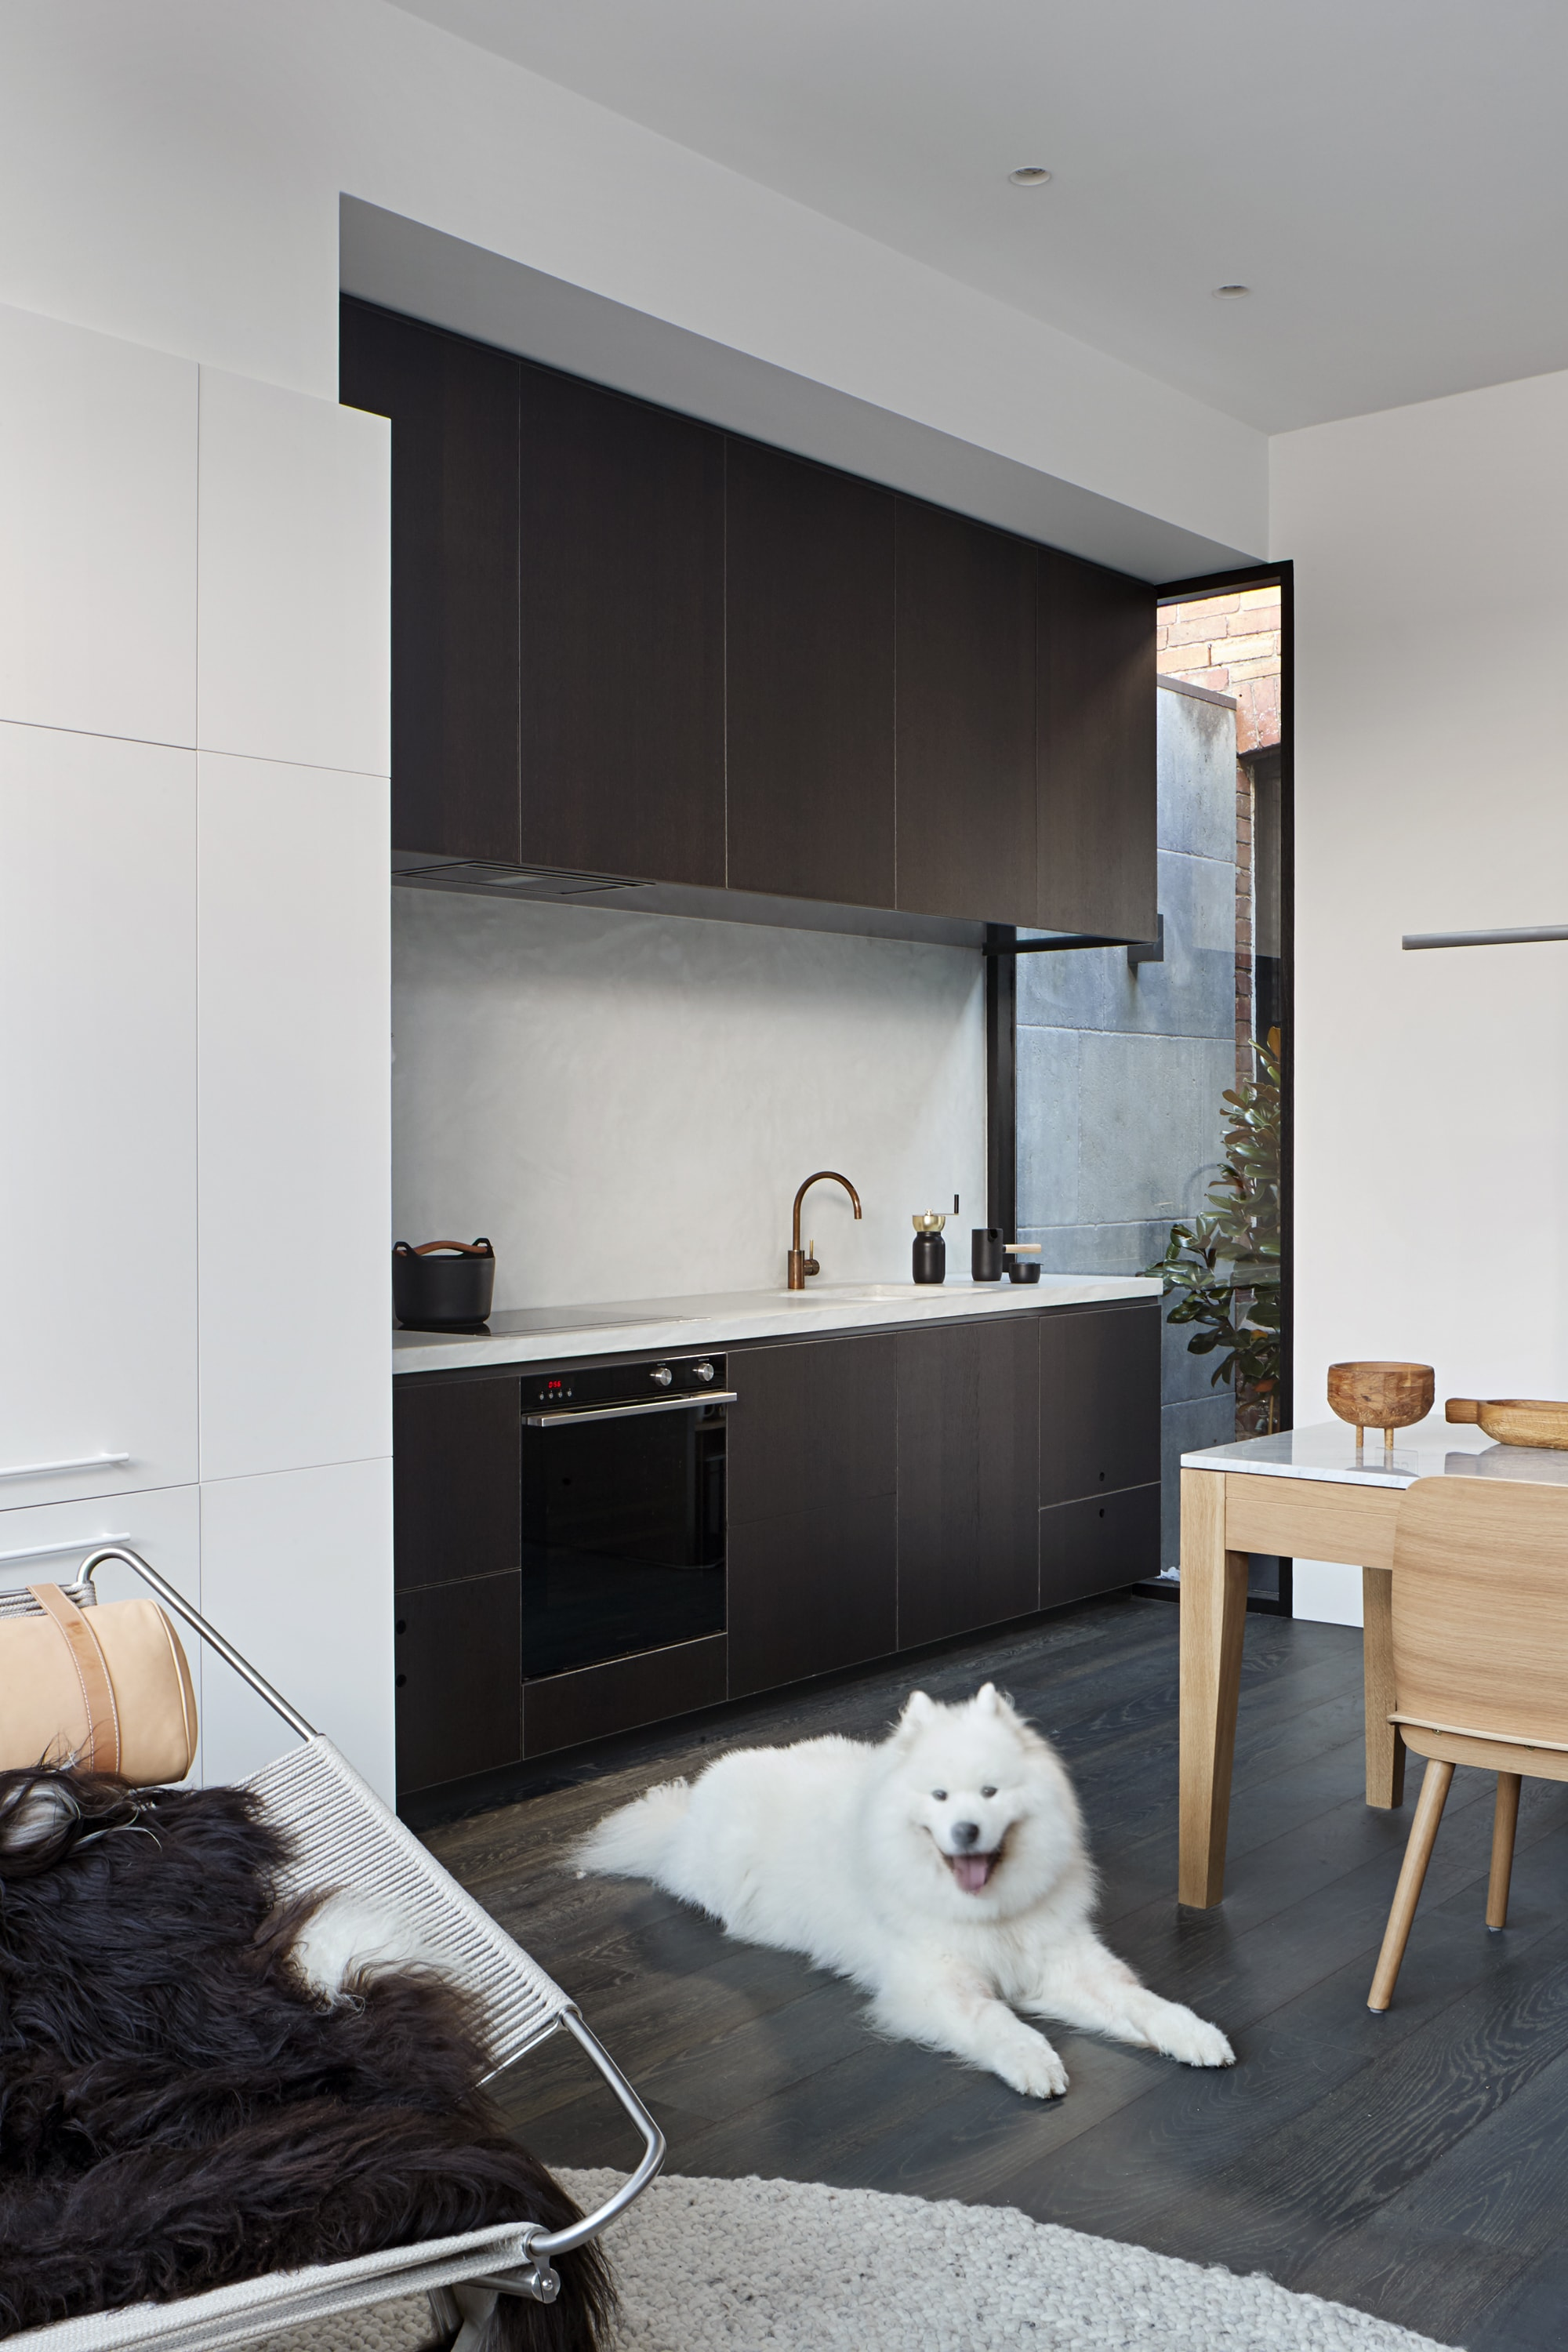 The Pocket House By Whiting Architects The Fisher & Paykel Series Melbourne, Victoria, Australiaf&p Whiting Littleogrady ©smg 9064 Min